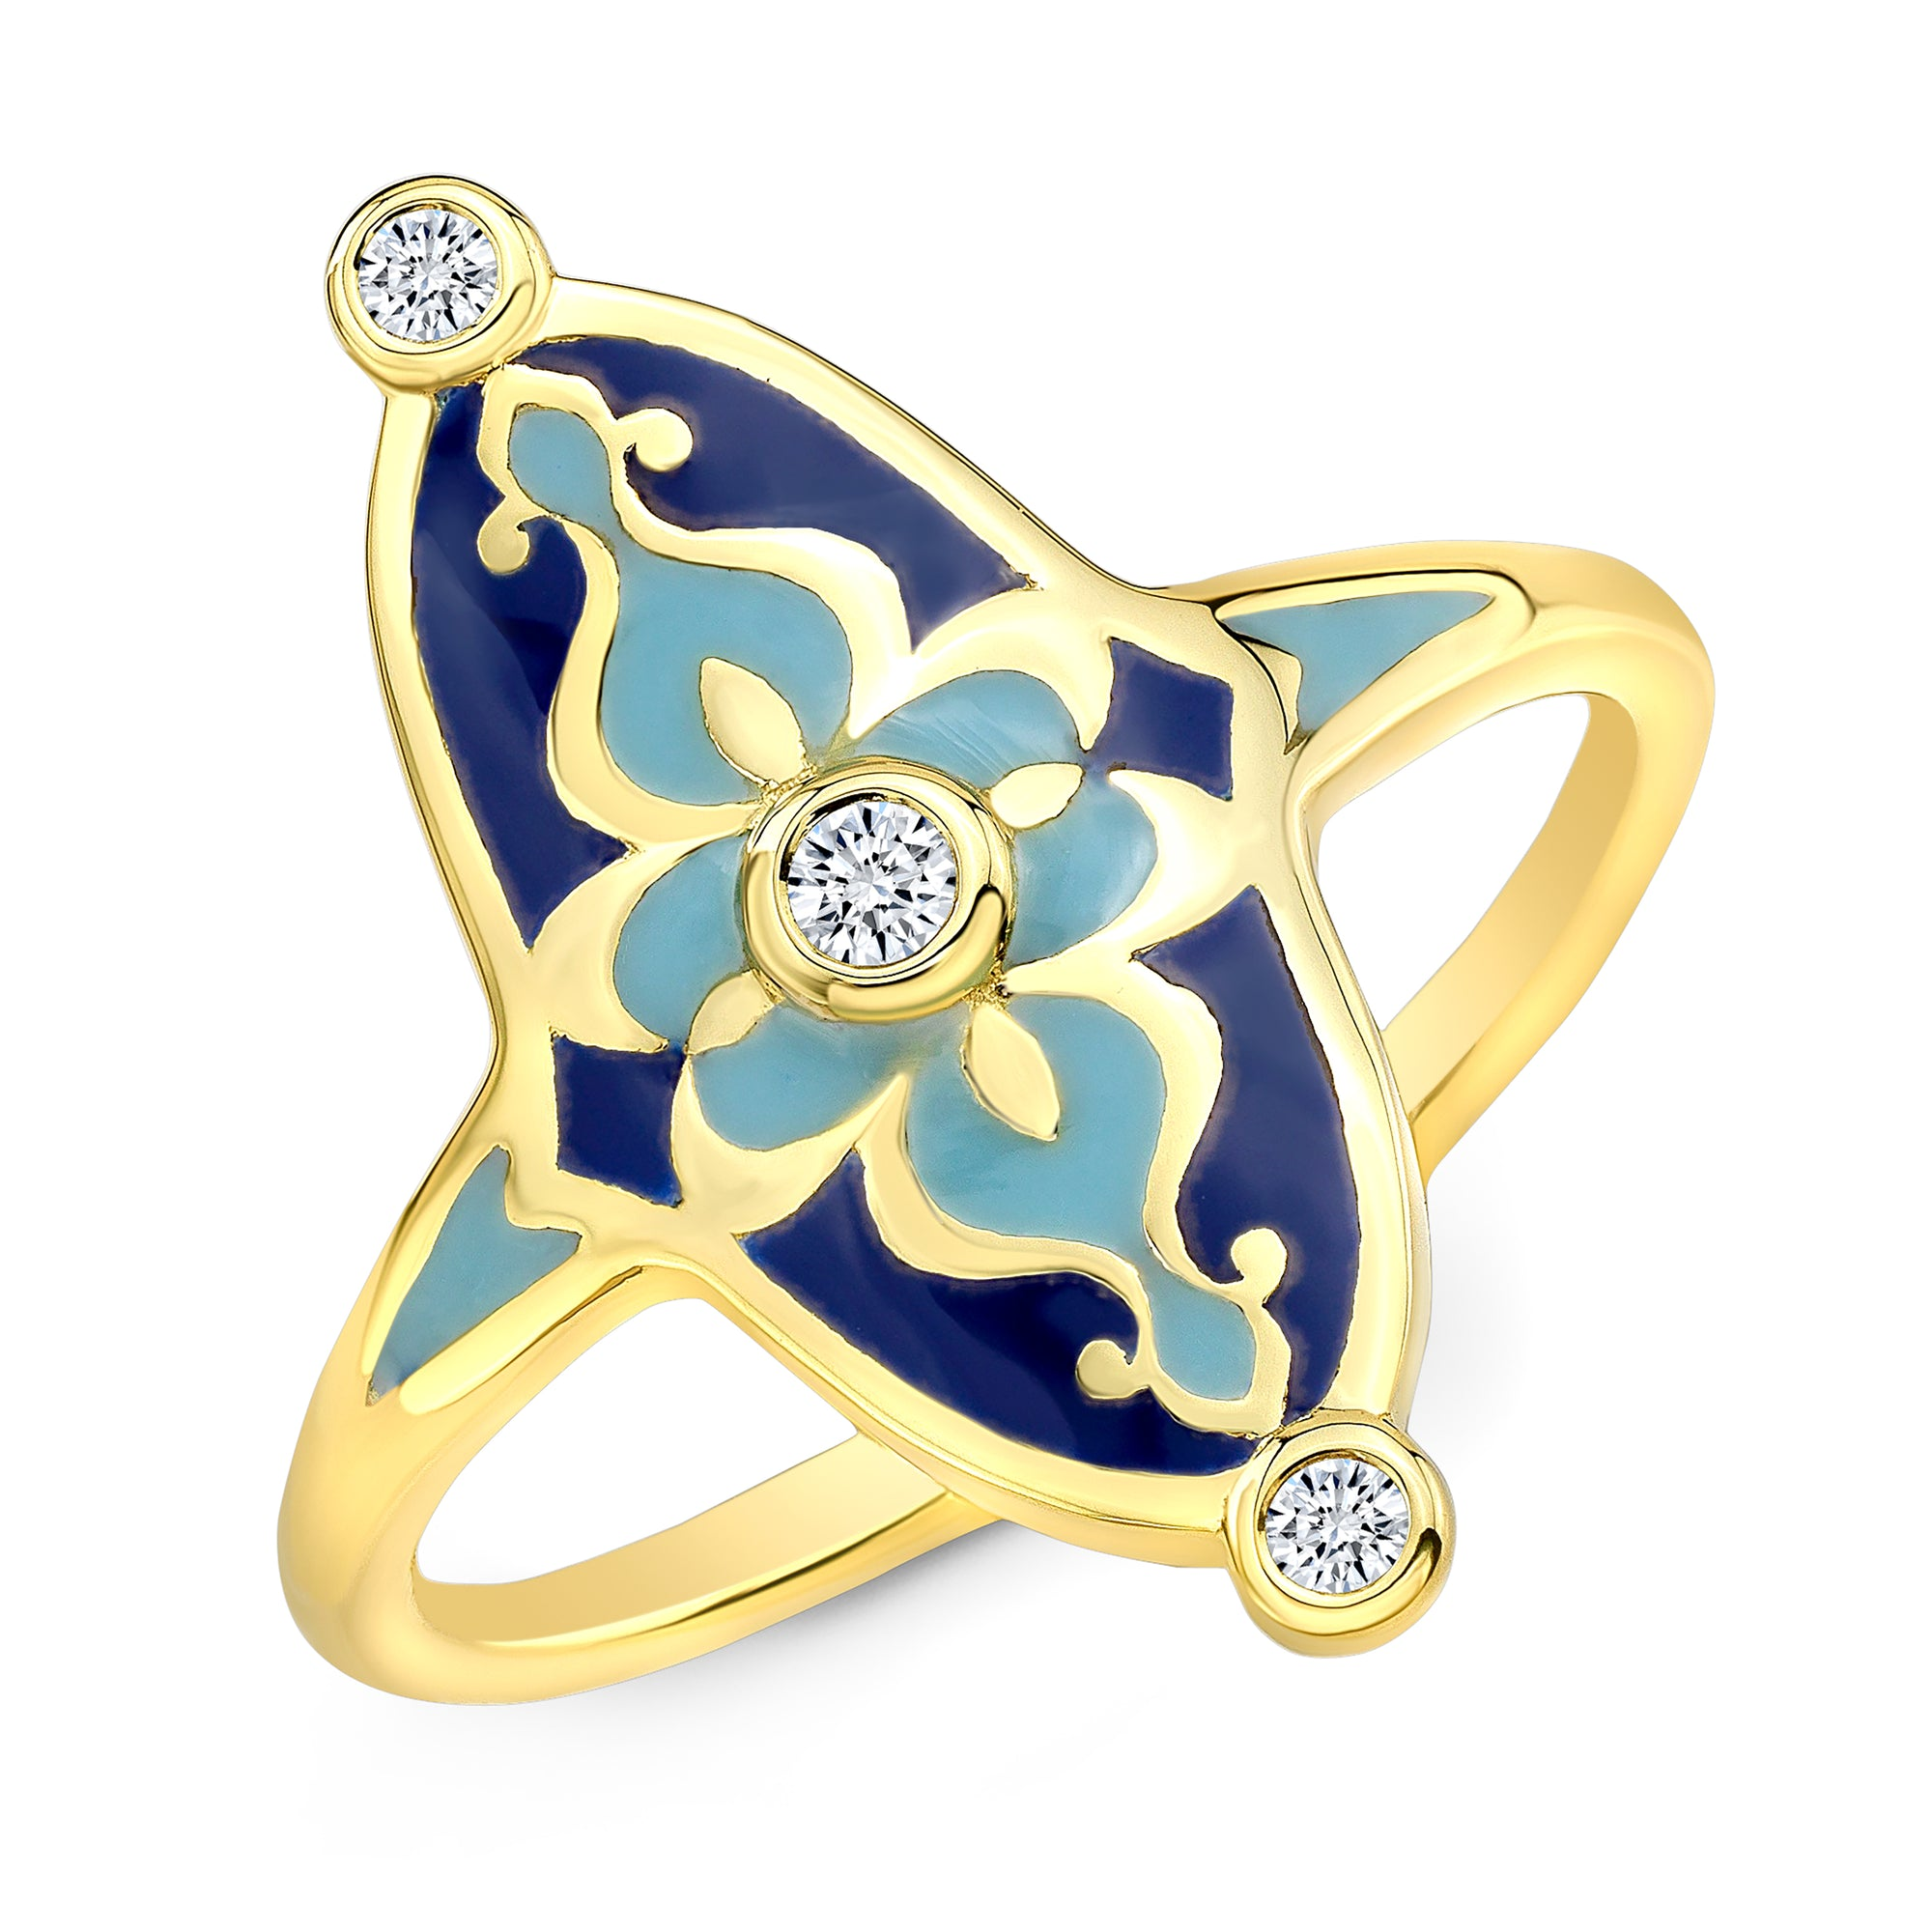 18k Yellow Gold and Blue Enamel Mosaic Diamond Ring by Lord Jewelry - Talisman Collection Fine Jewelers